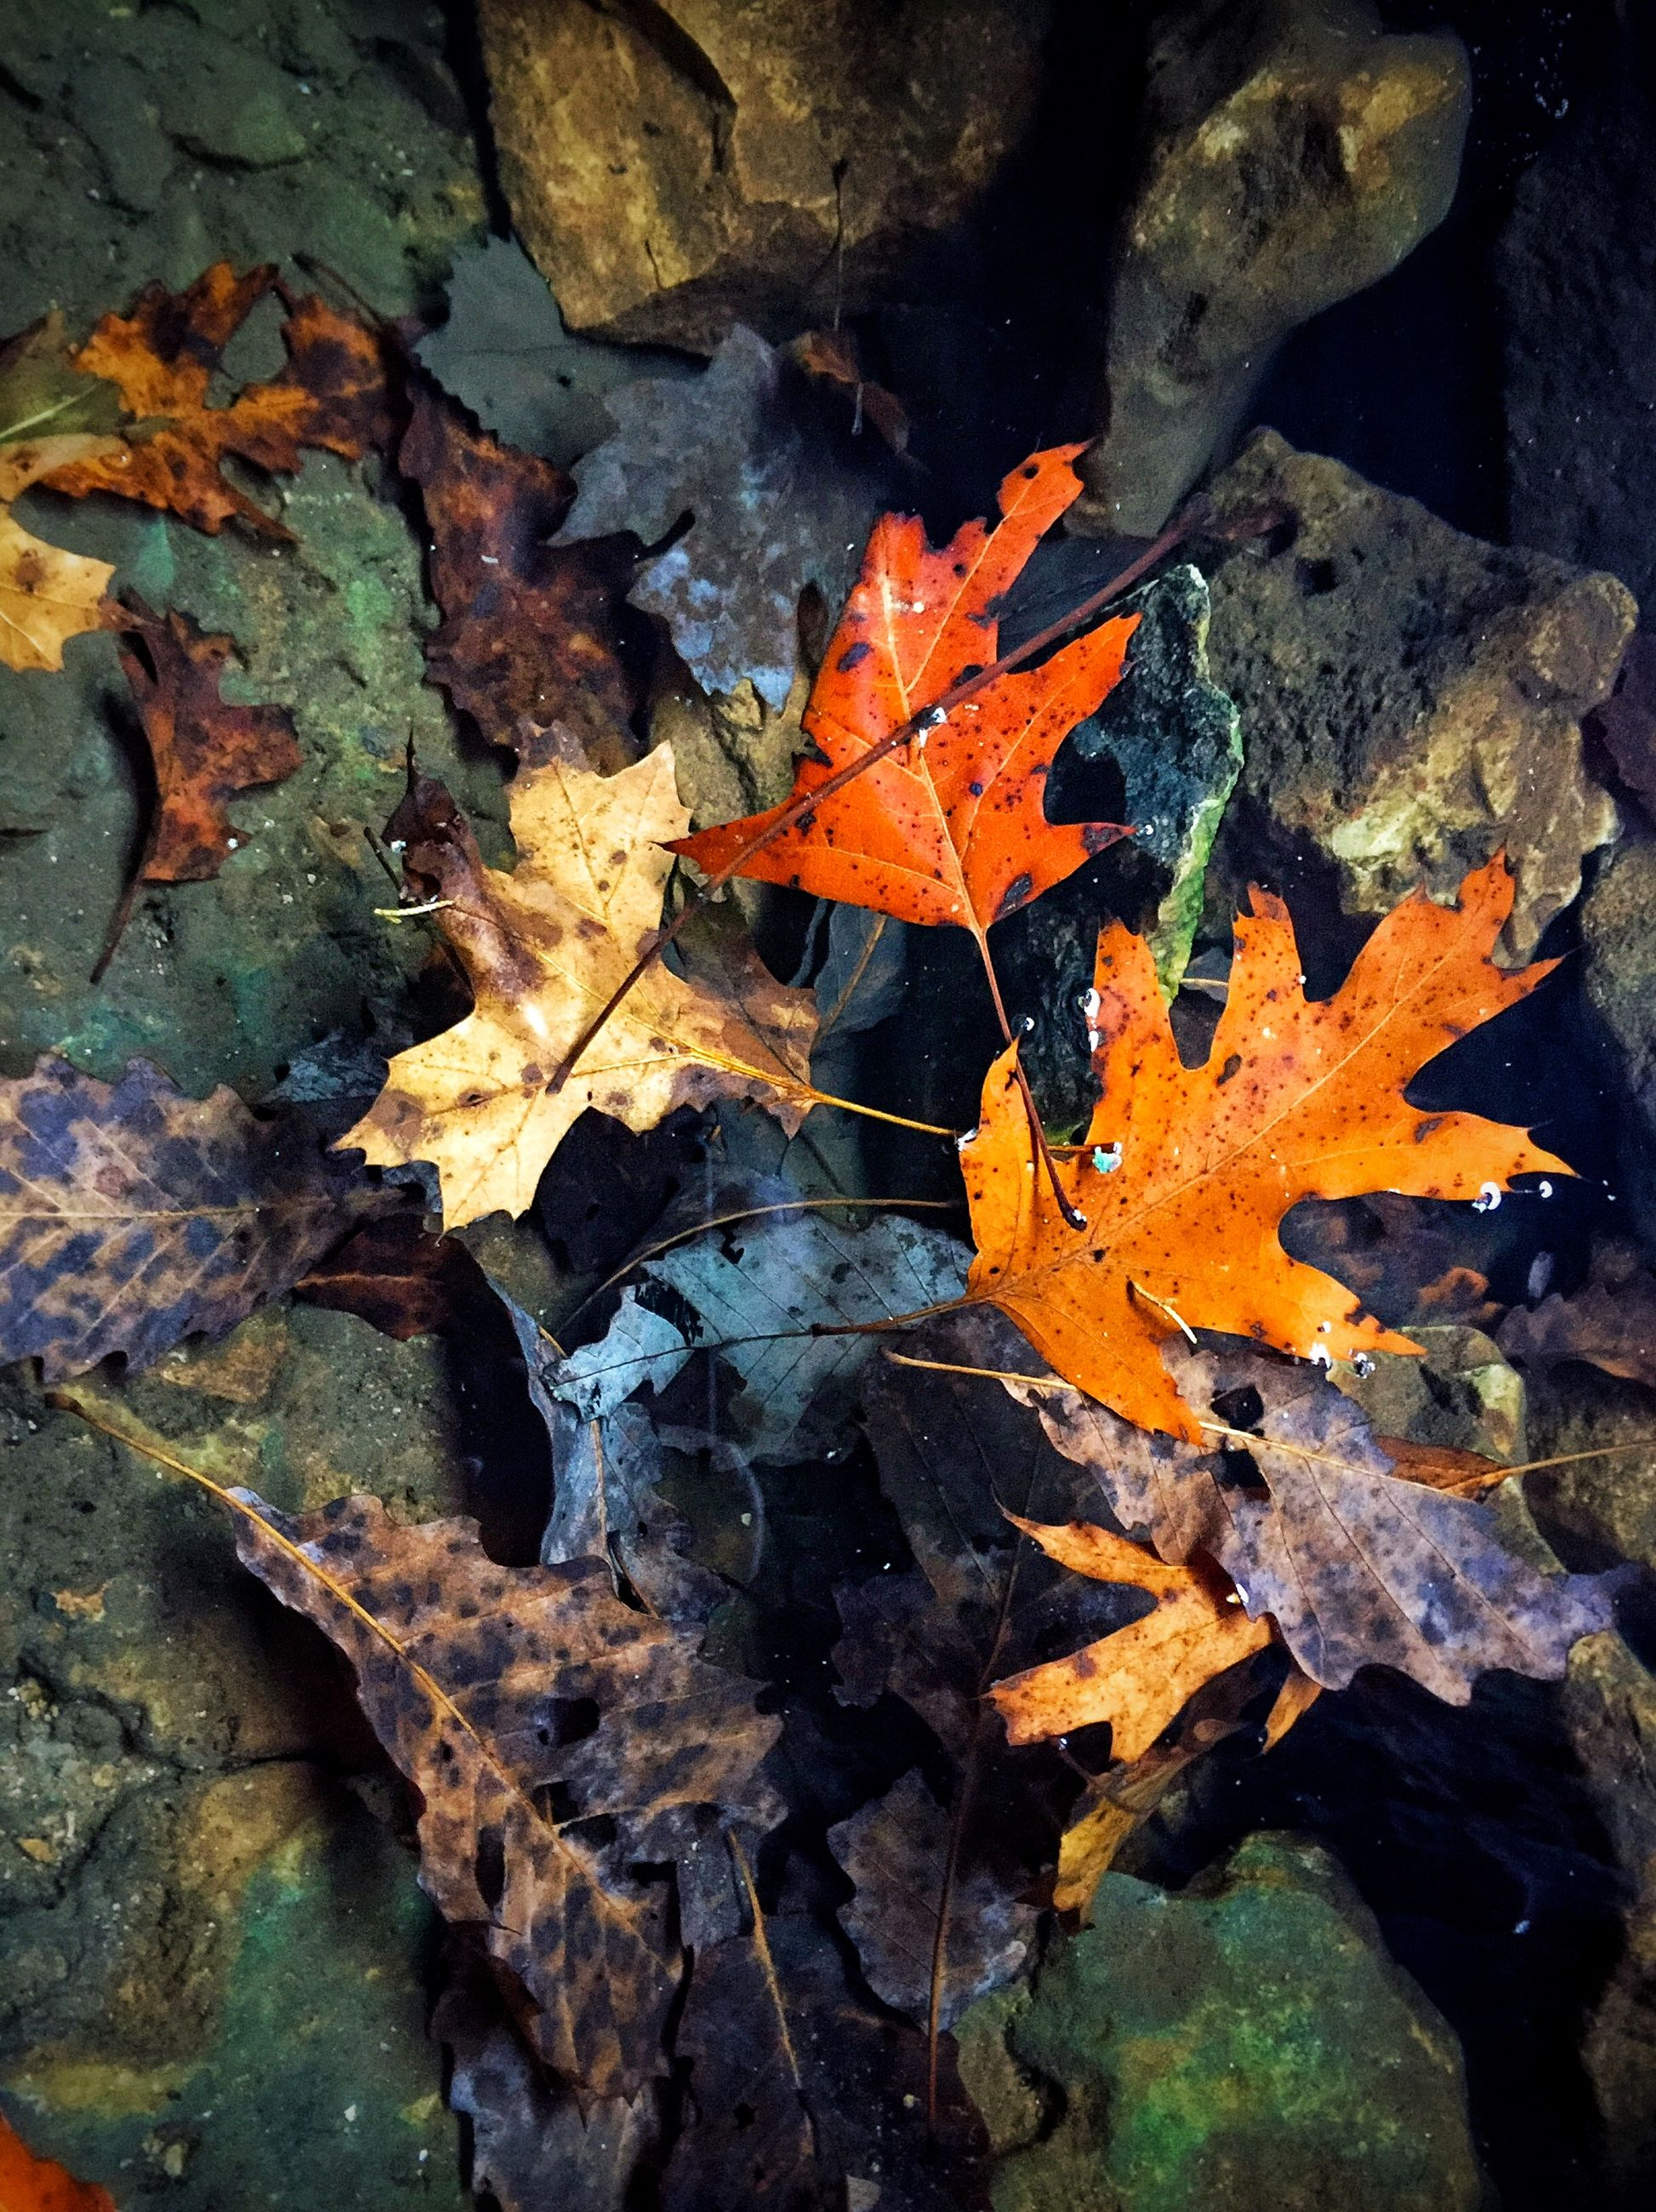 autumn, leaf, change, orange color, season, close-up, maple leaf, nature, dry, fallen, leaves, natural condition, natural pattern, high angle view, outdoors, textured, no people, day, yellow, fragility